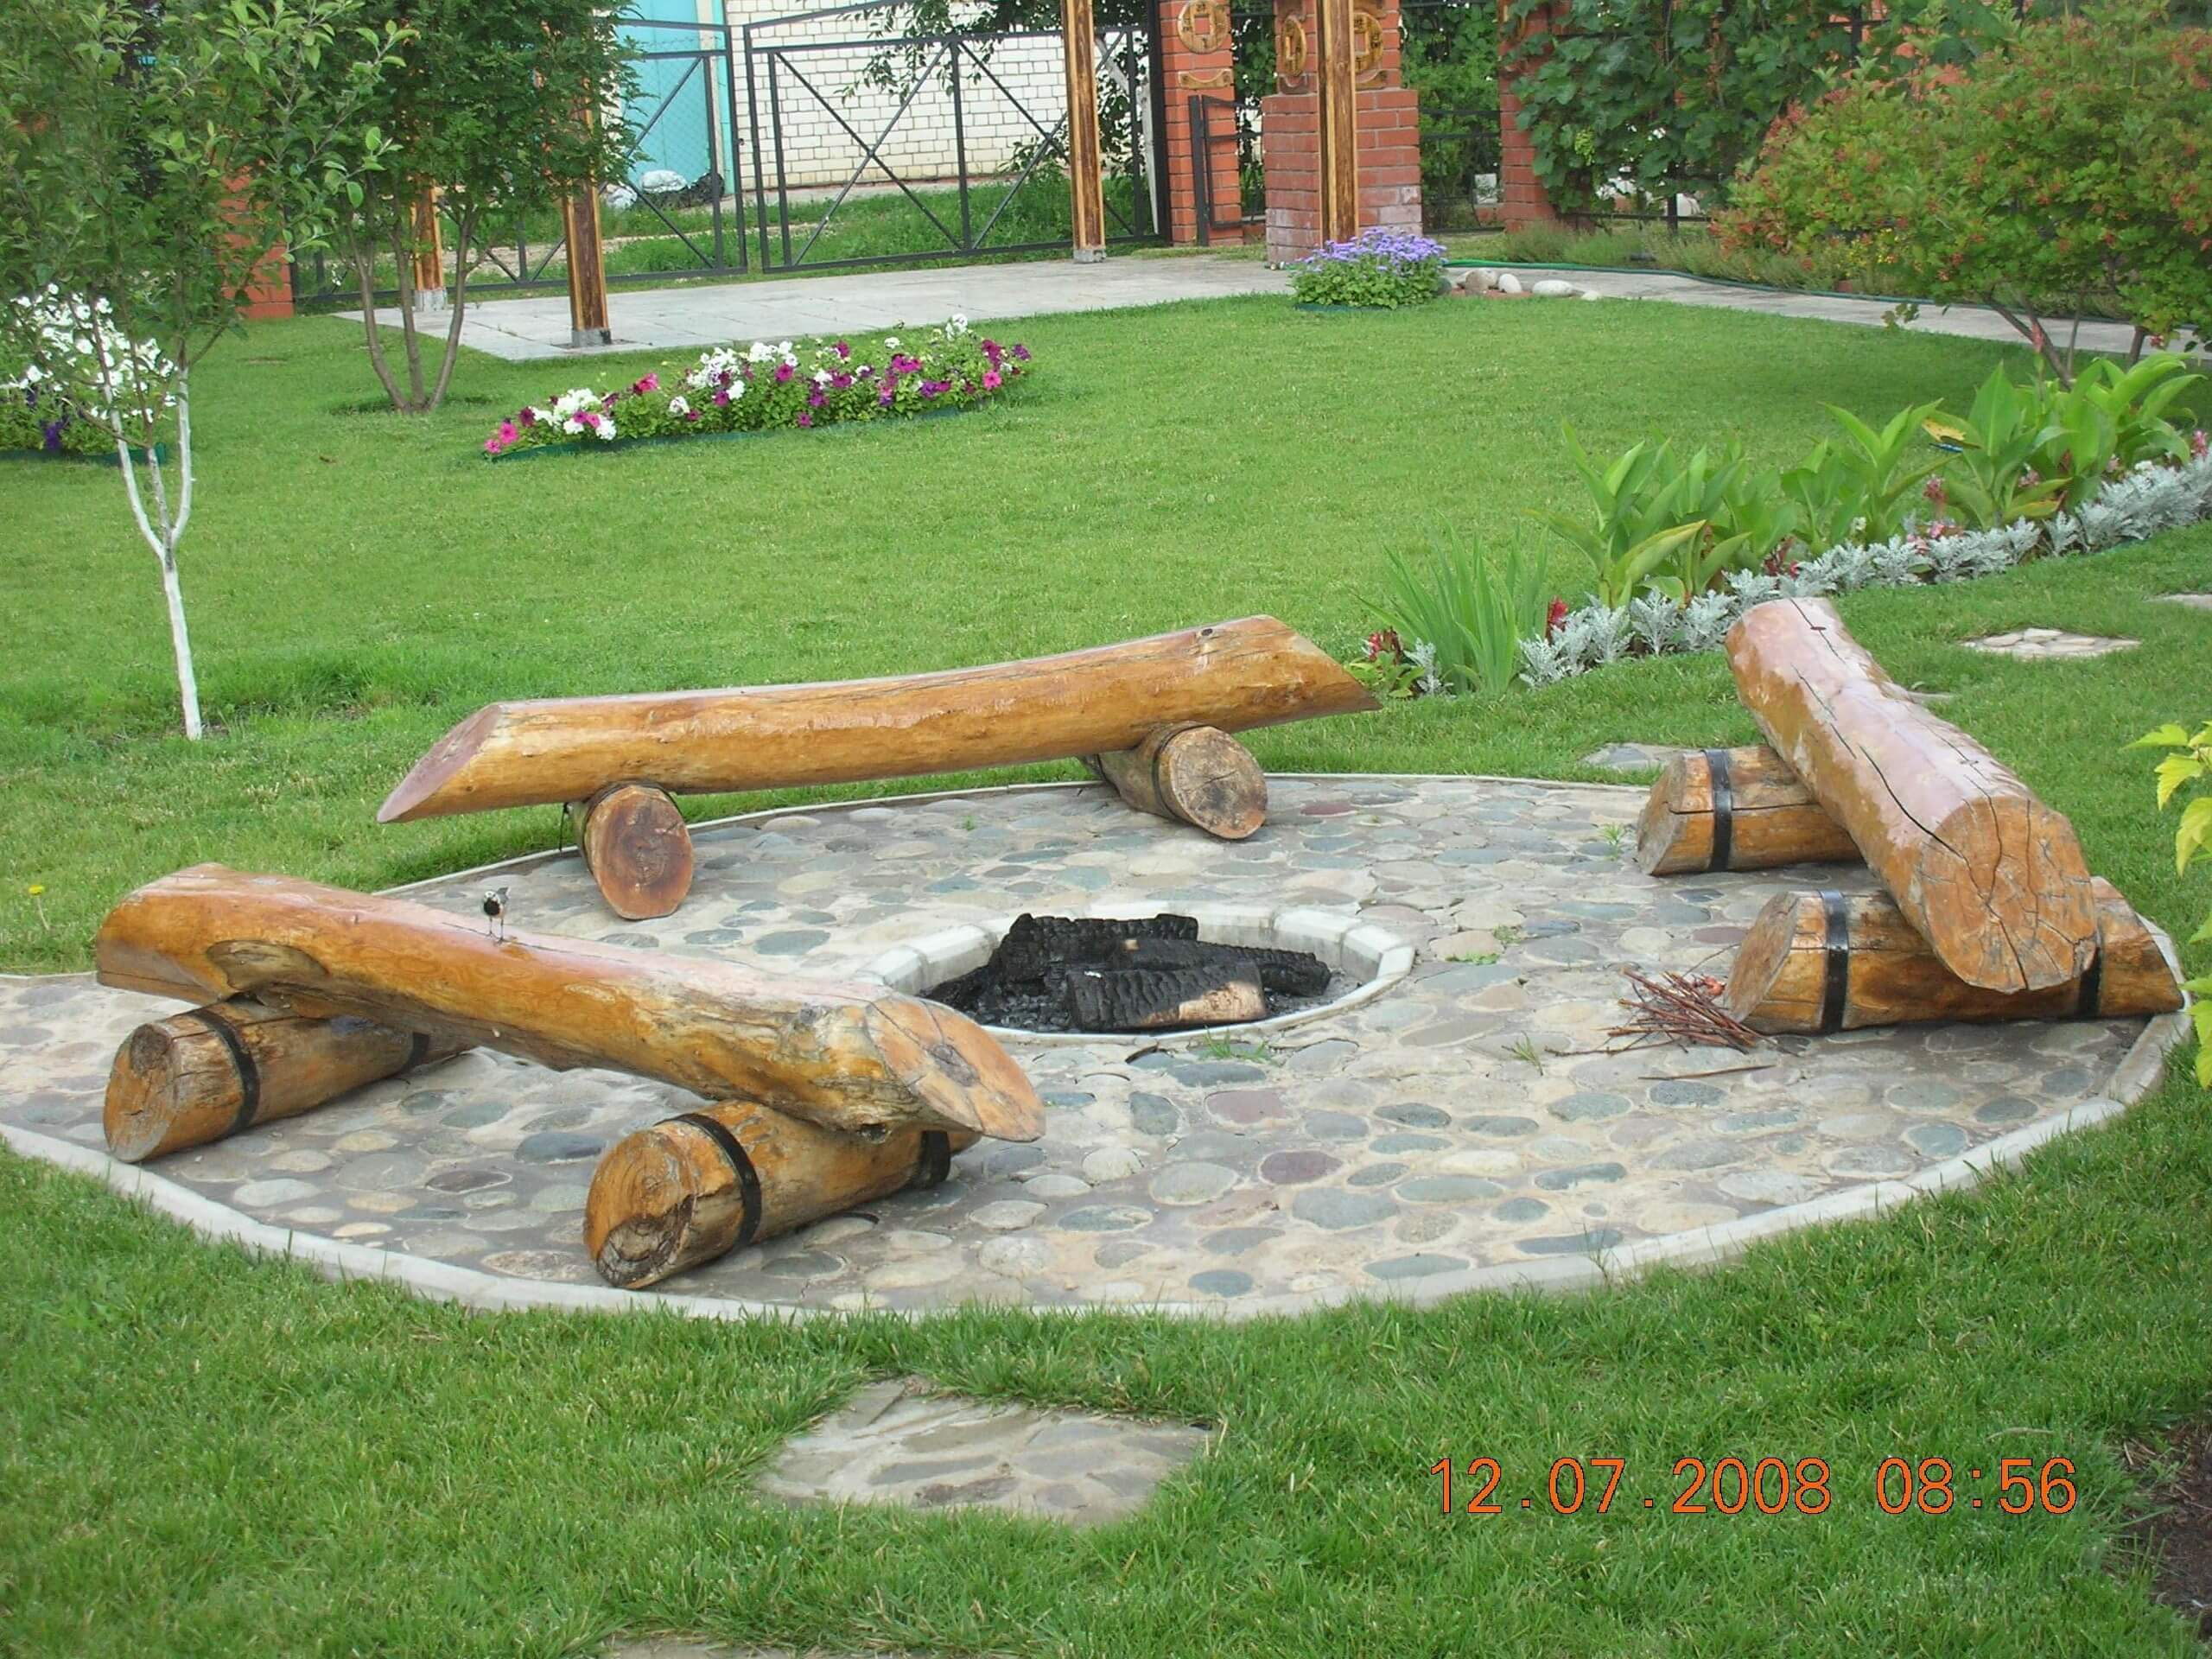 Log Benches Surrounding a Pit in Stone